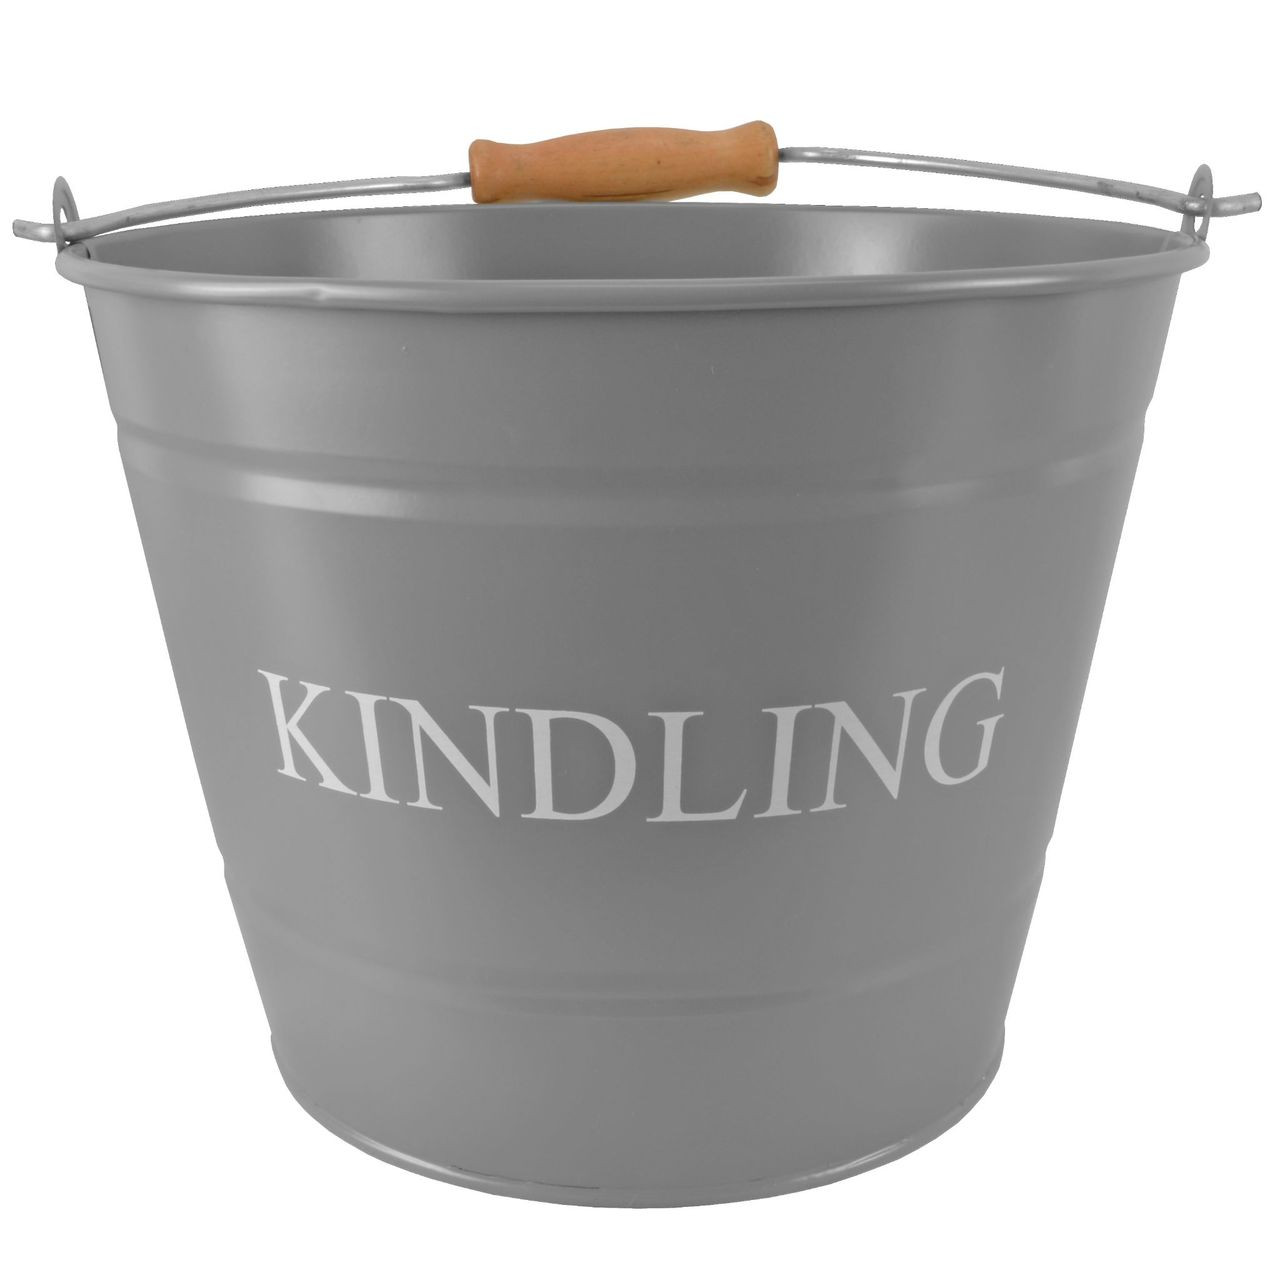 Small Kindling Bucket Grey 18cm